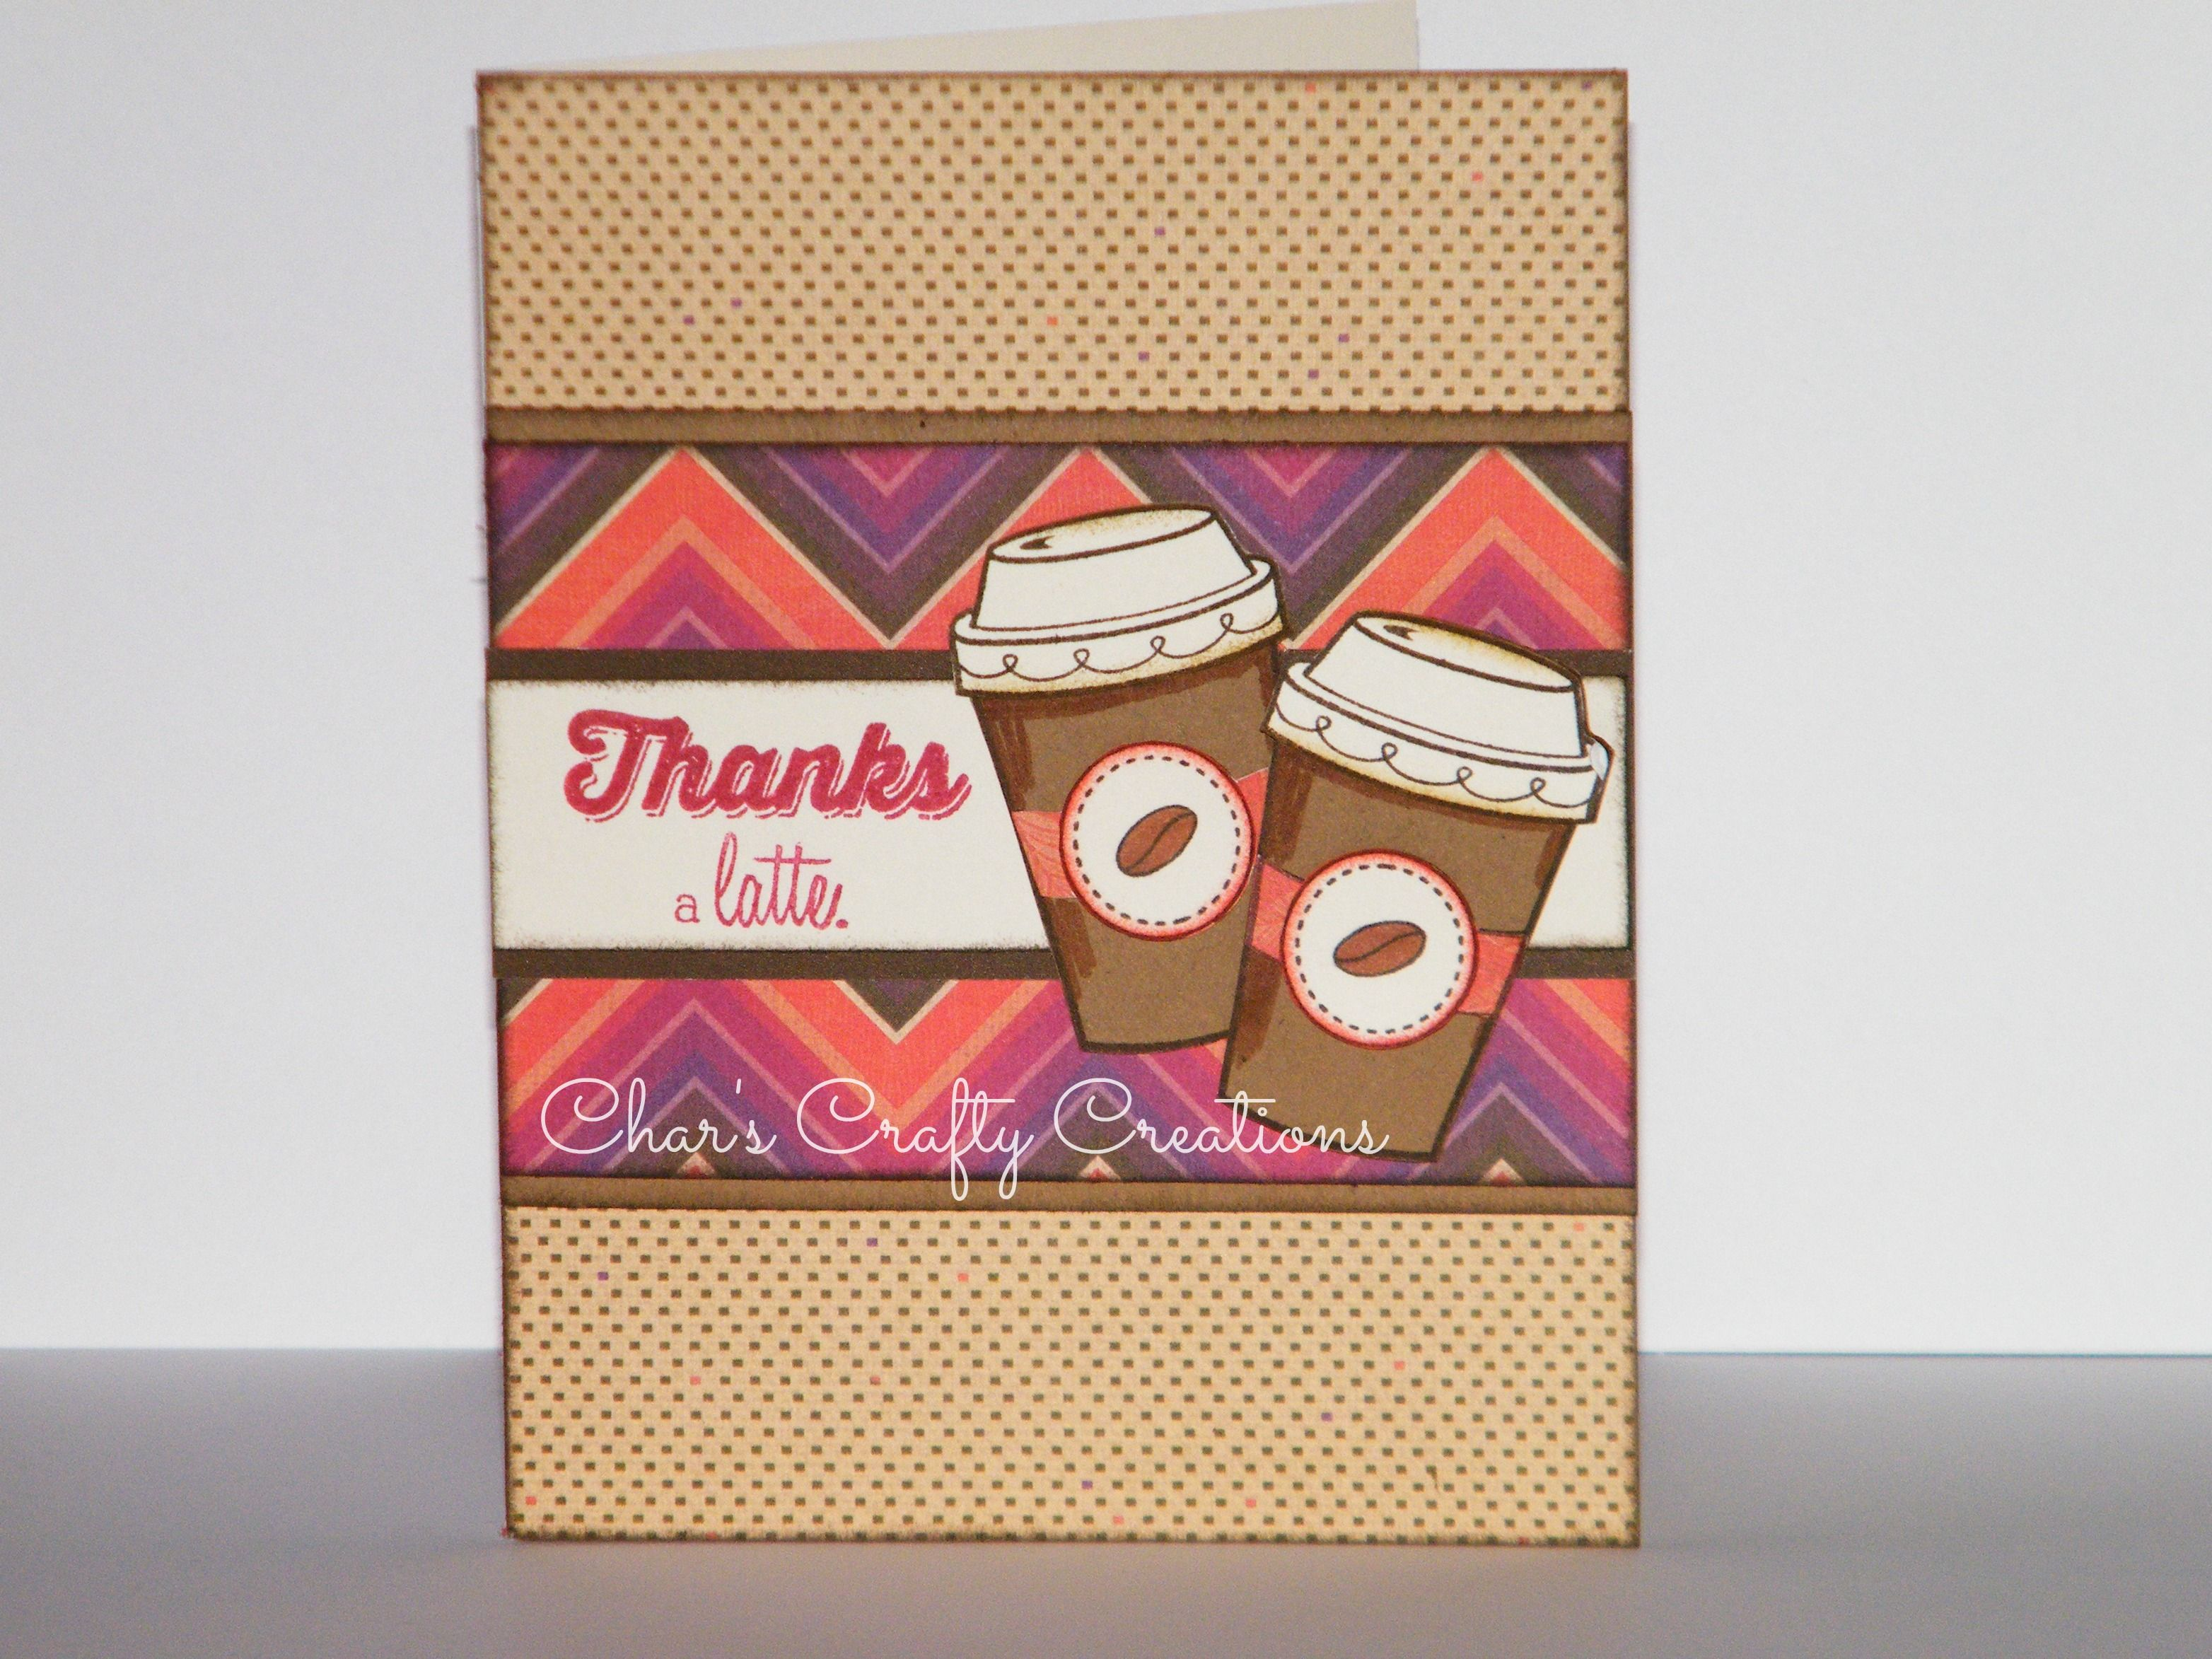 CTMH Sangria card by Char's Crafty Creations. Found a similar card on Pinterest done in another paper pack, but can no longer find the pin to credit the original artist. If it's you, please let me know!